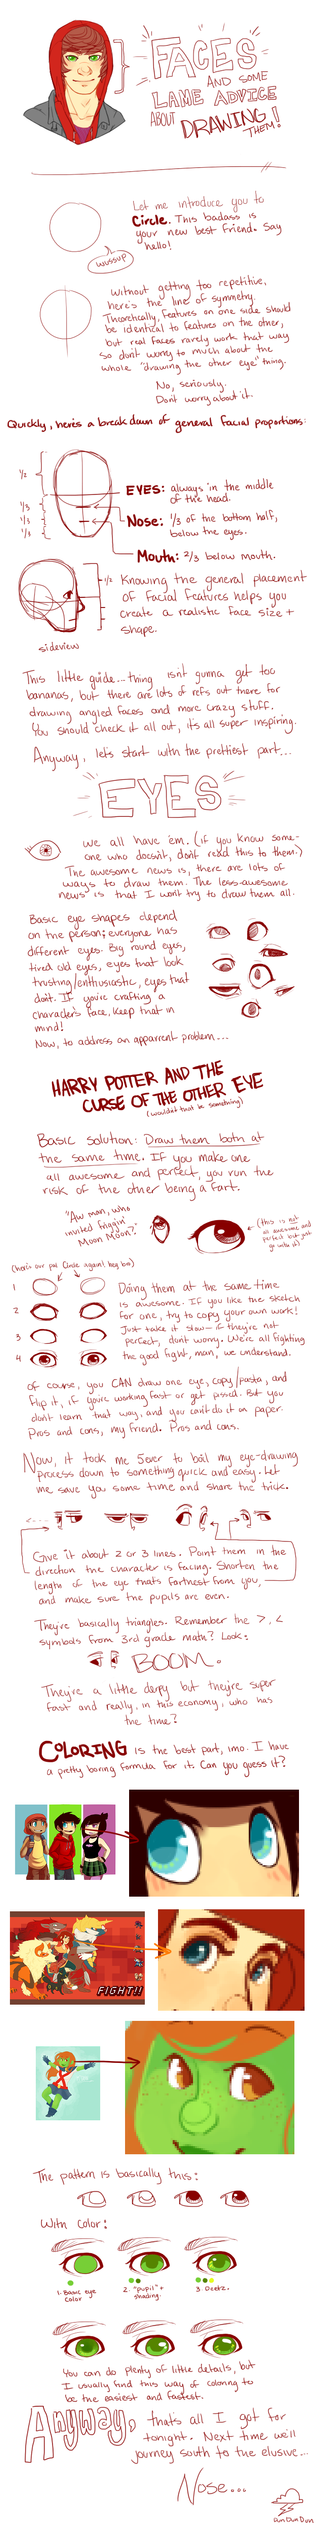 Faces - EYES by 1000th